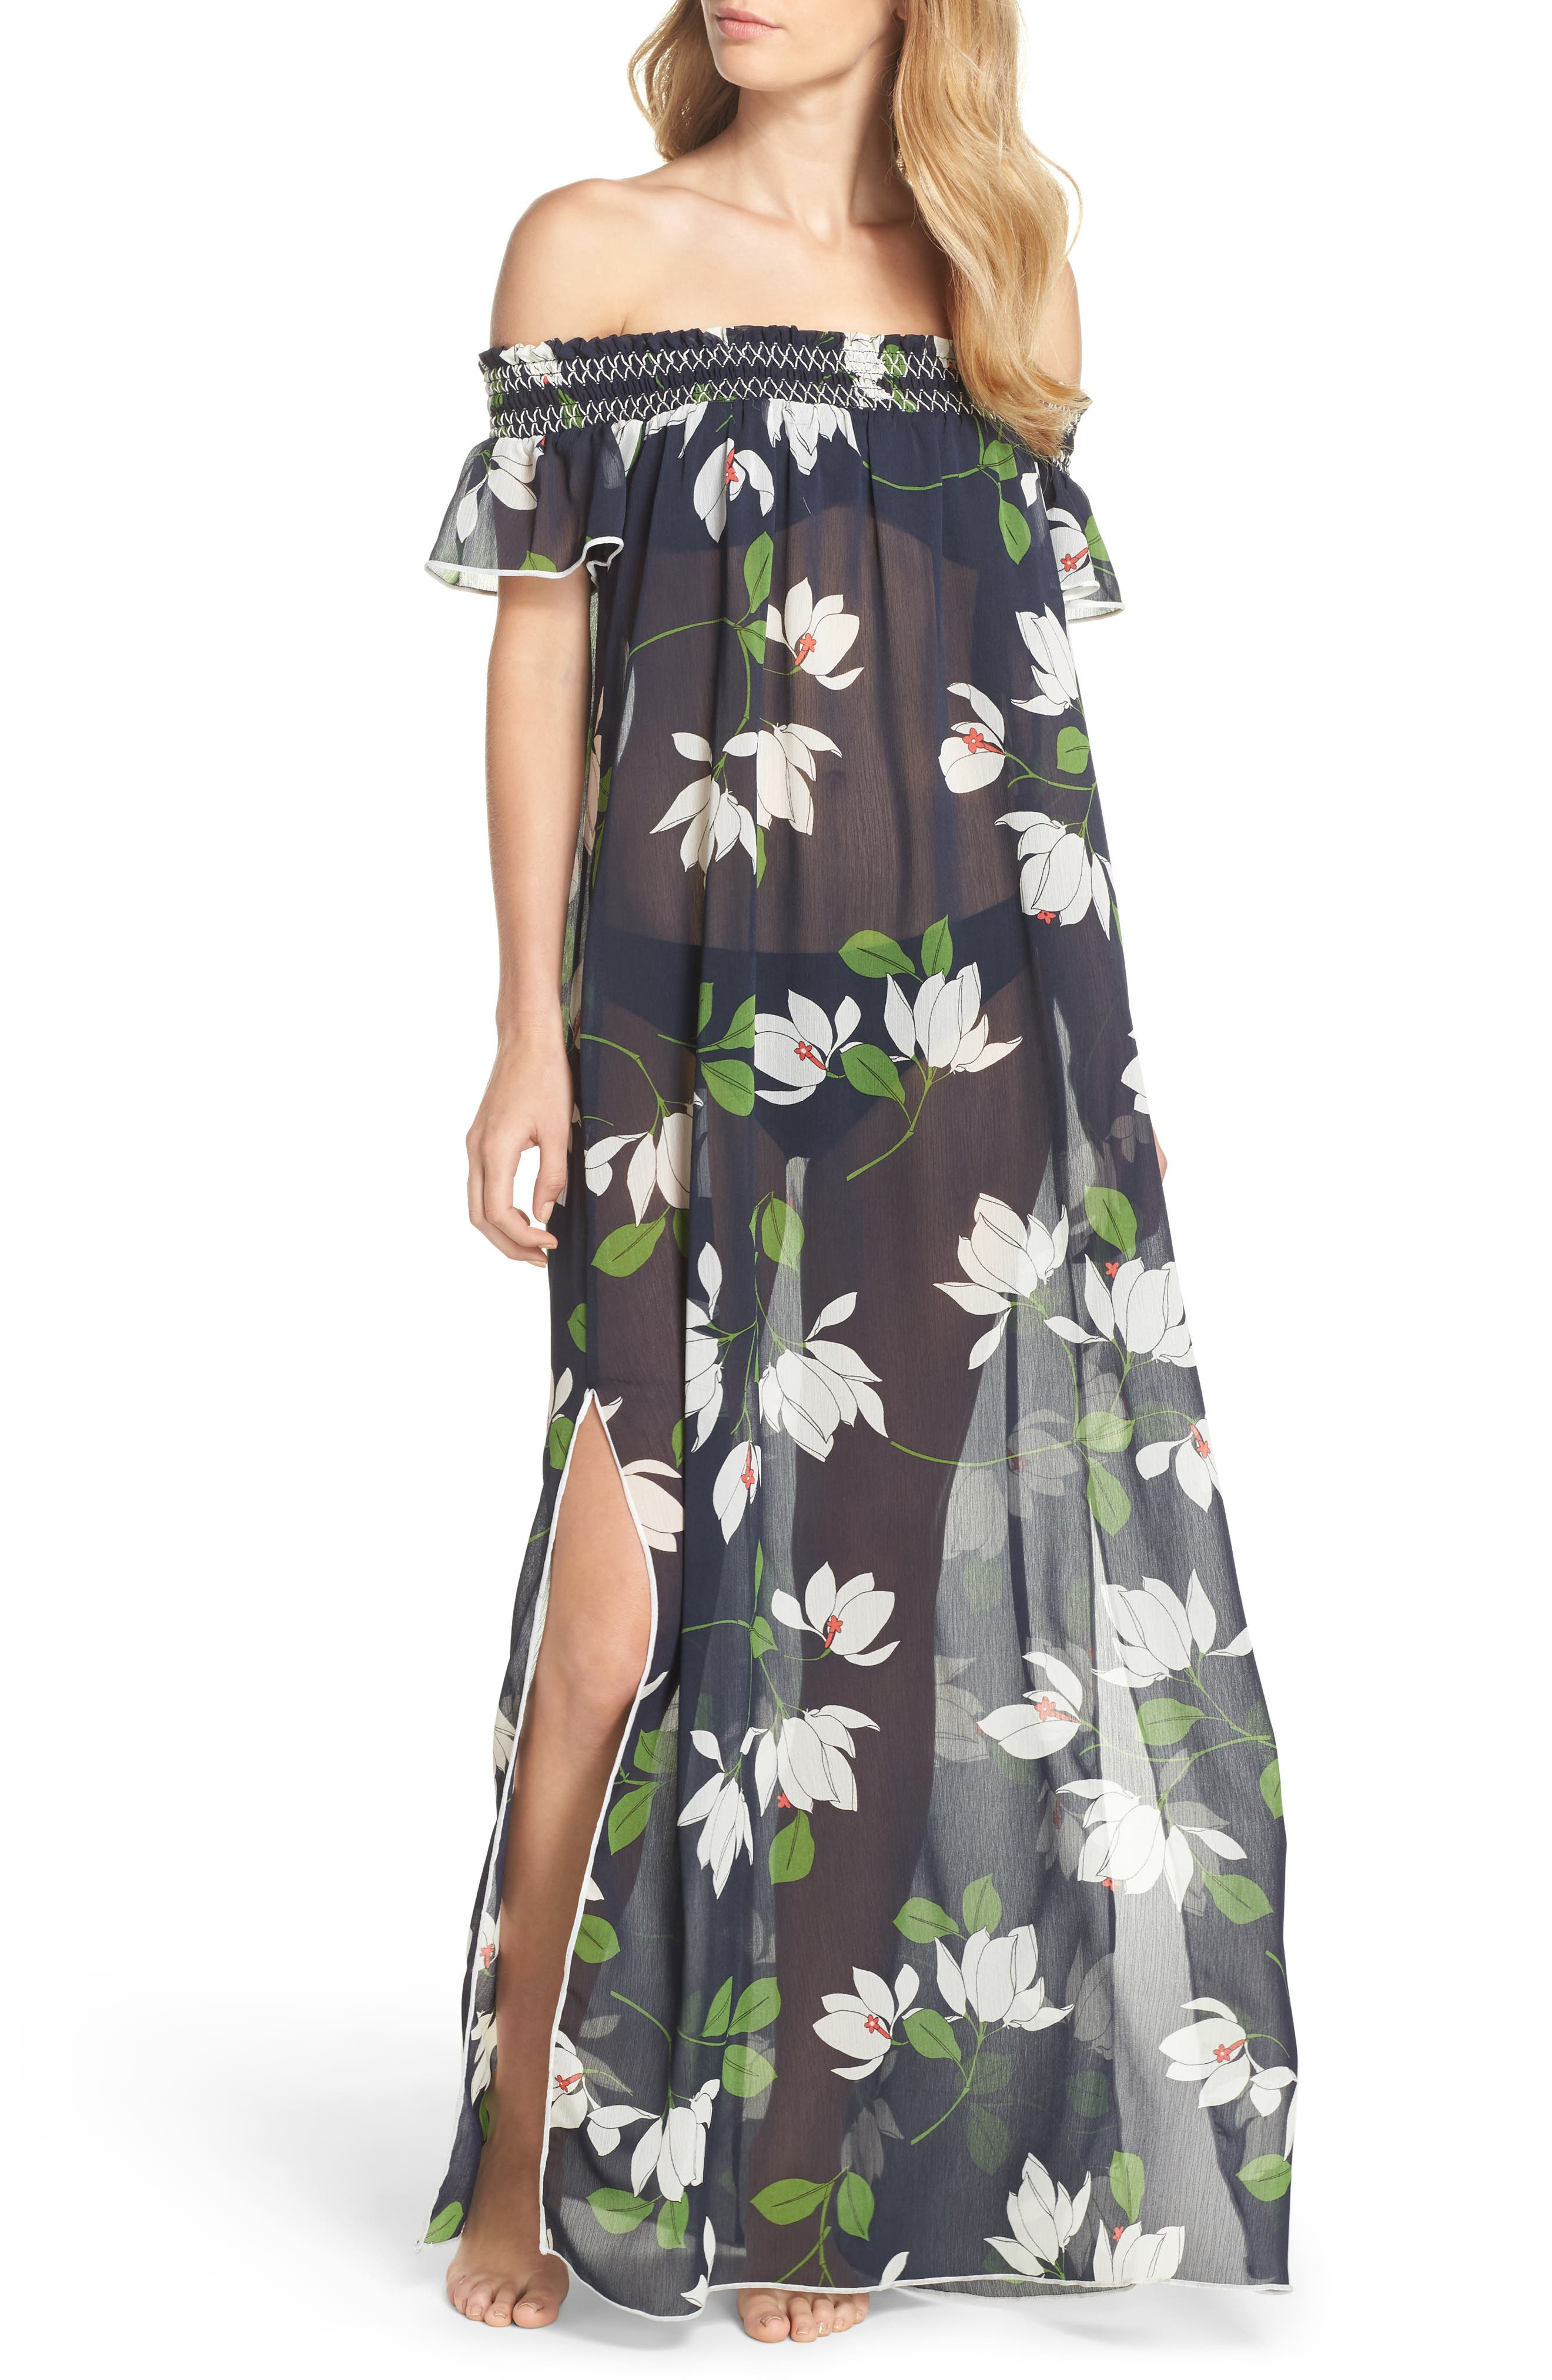 Alternate Image 1 Selected - Robin Piccone Sheer Off the Shoulder Cover-Up Dress